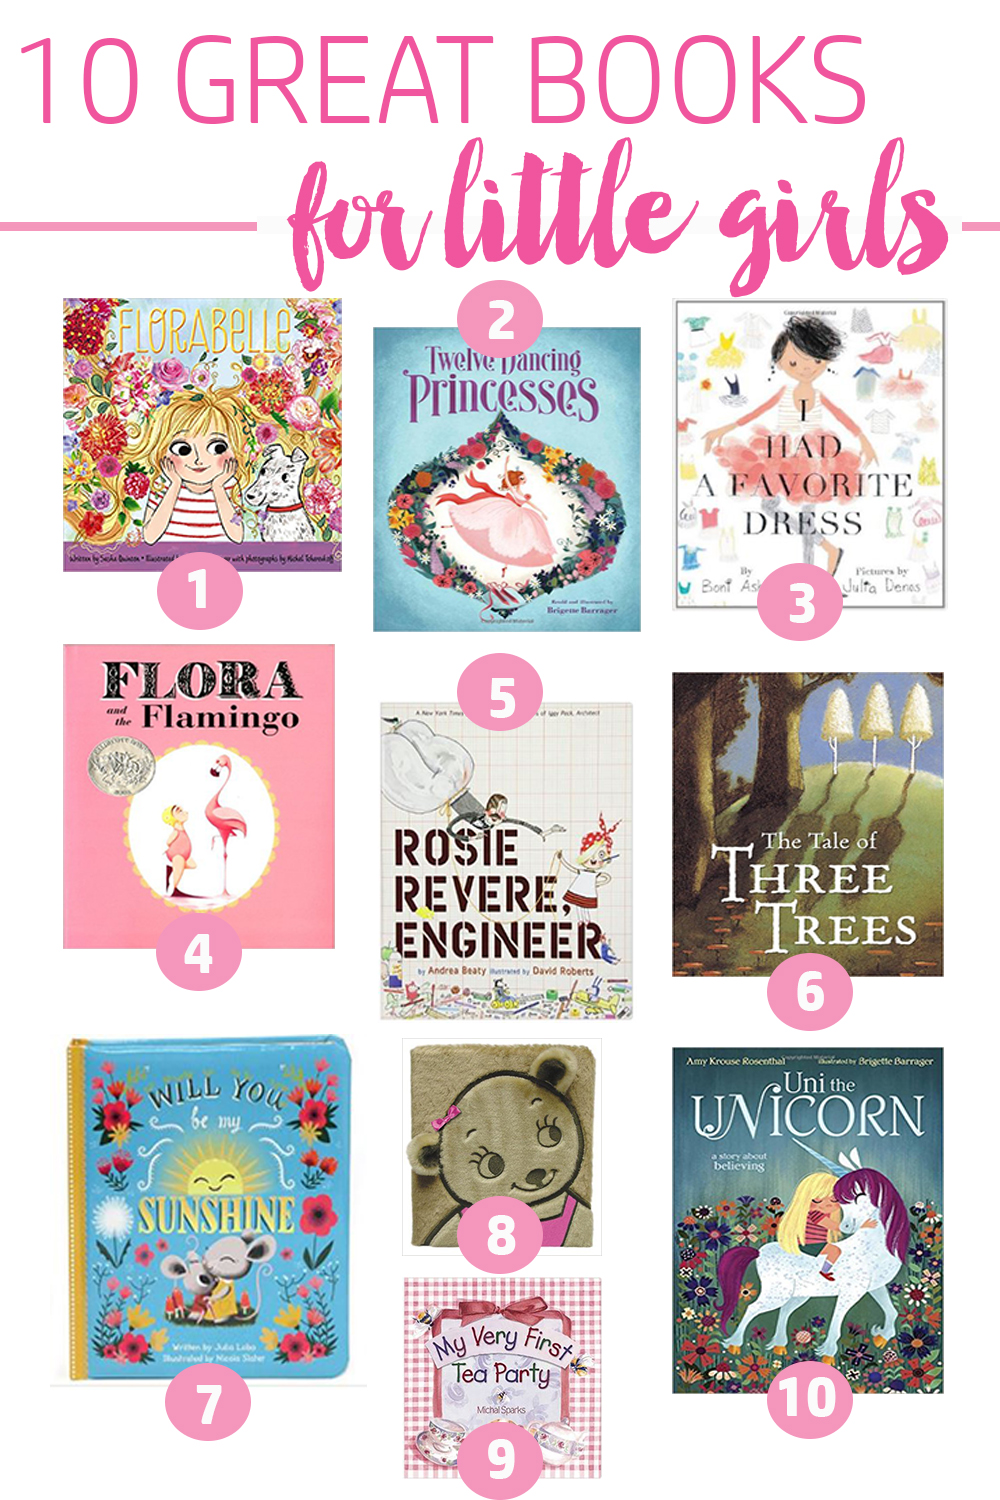 10-great-books-for-little-girls